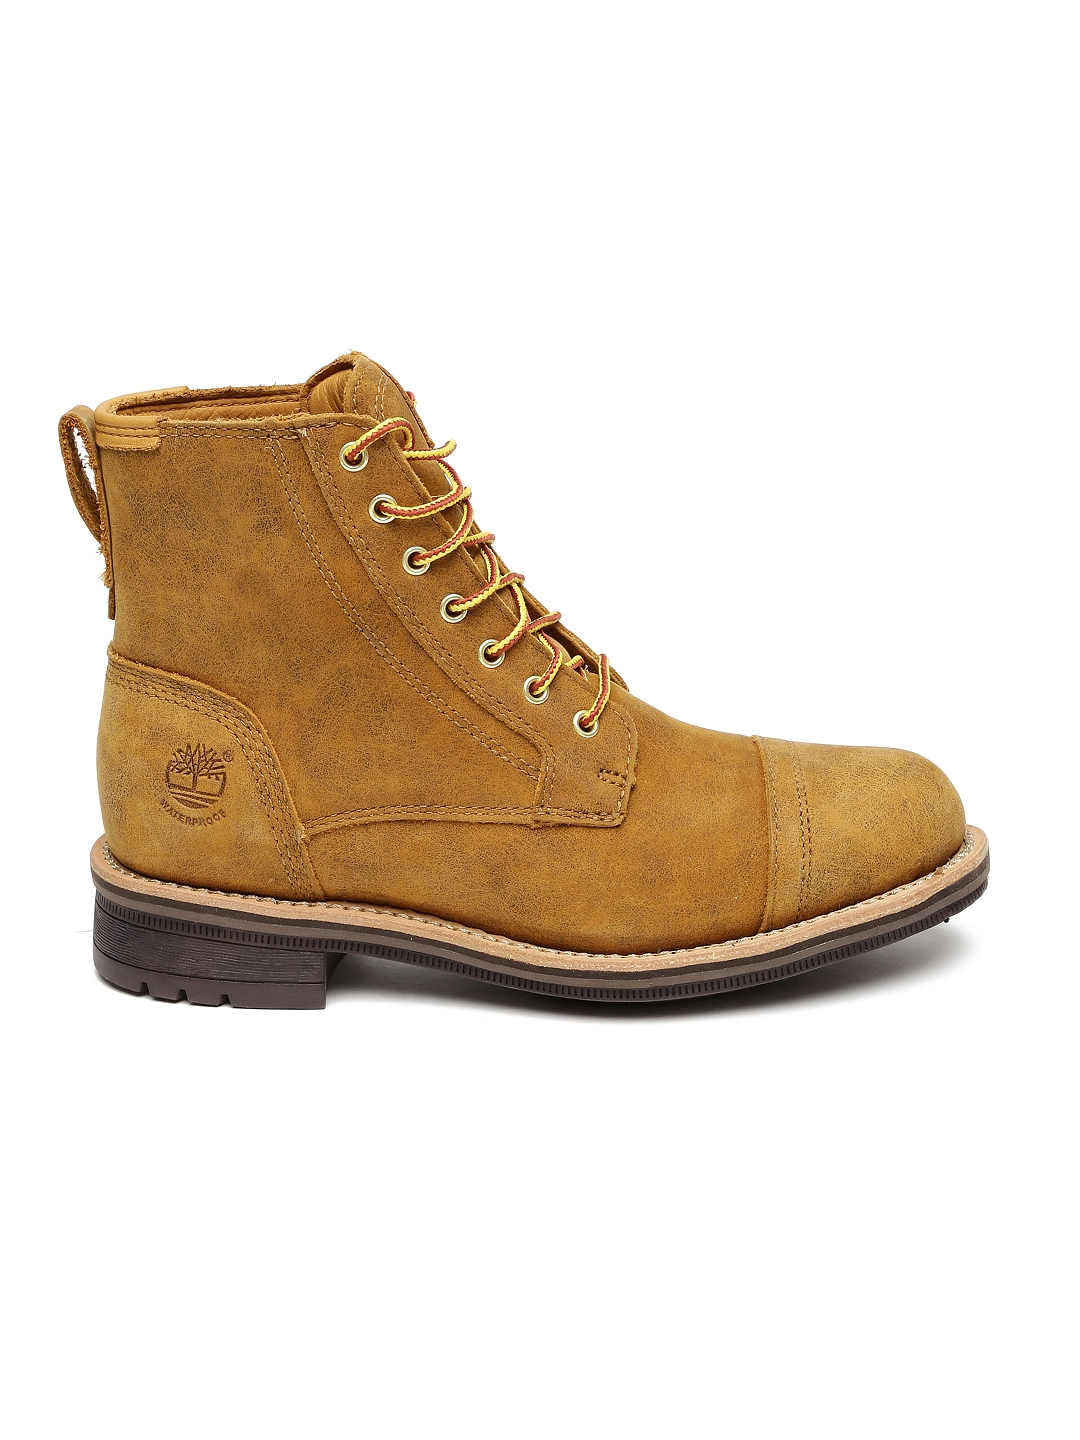 Timberland Men Tan Brown Leather Mid Top Flat Boots